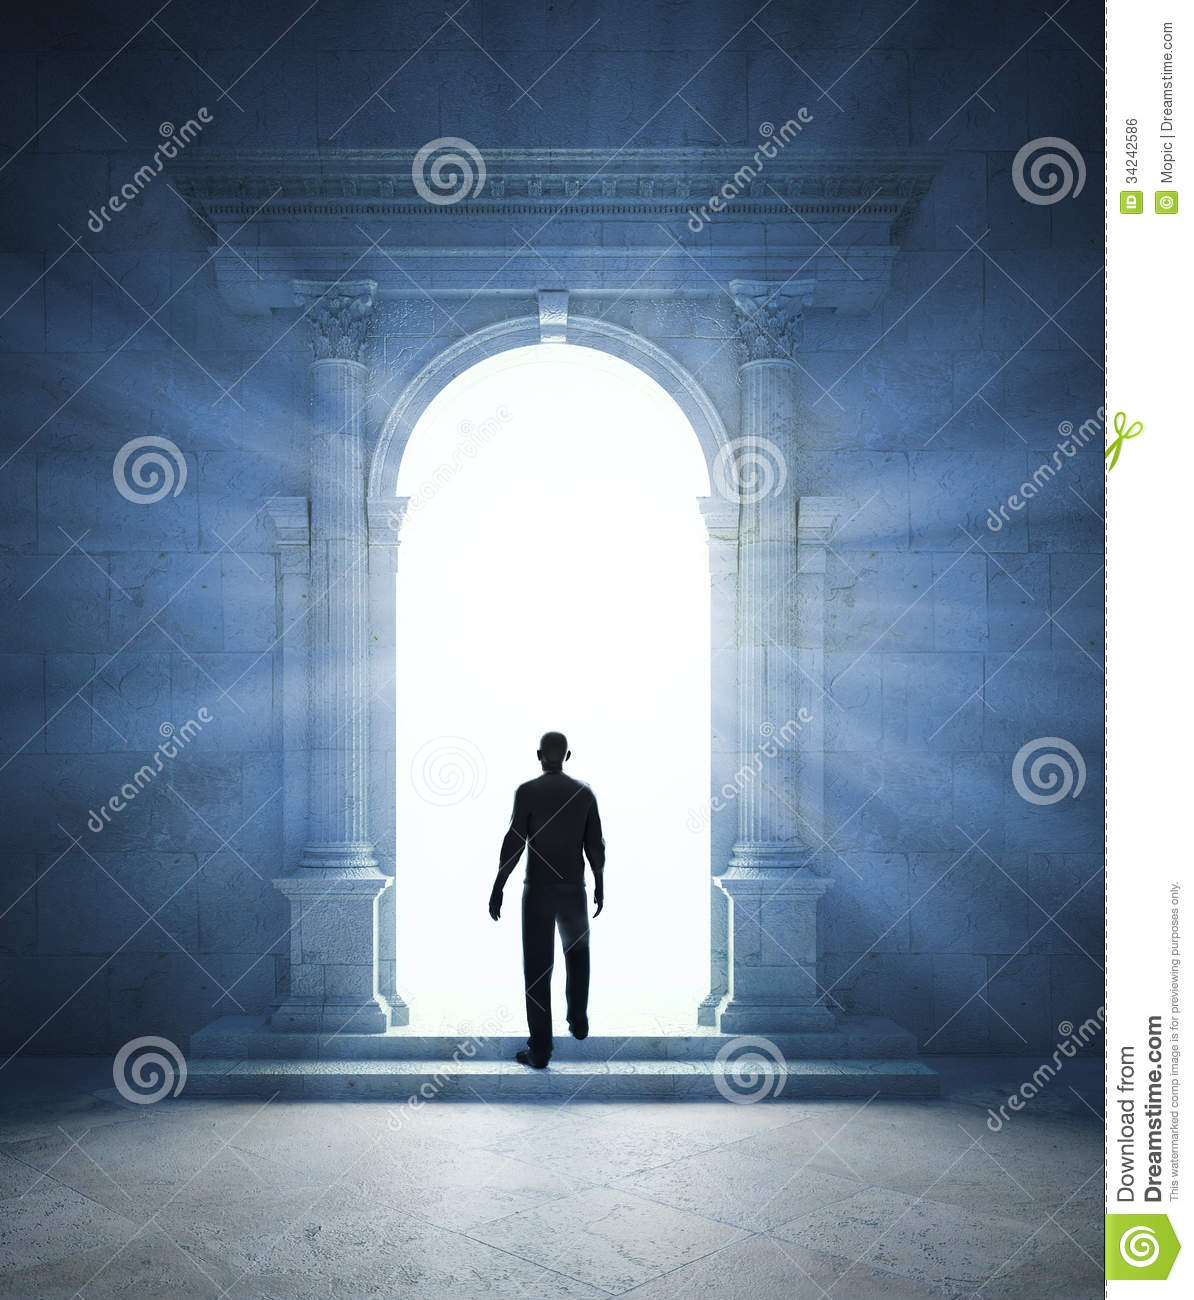 Mysterious Portal Royalty Free Stock Image - Image: 34242586